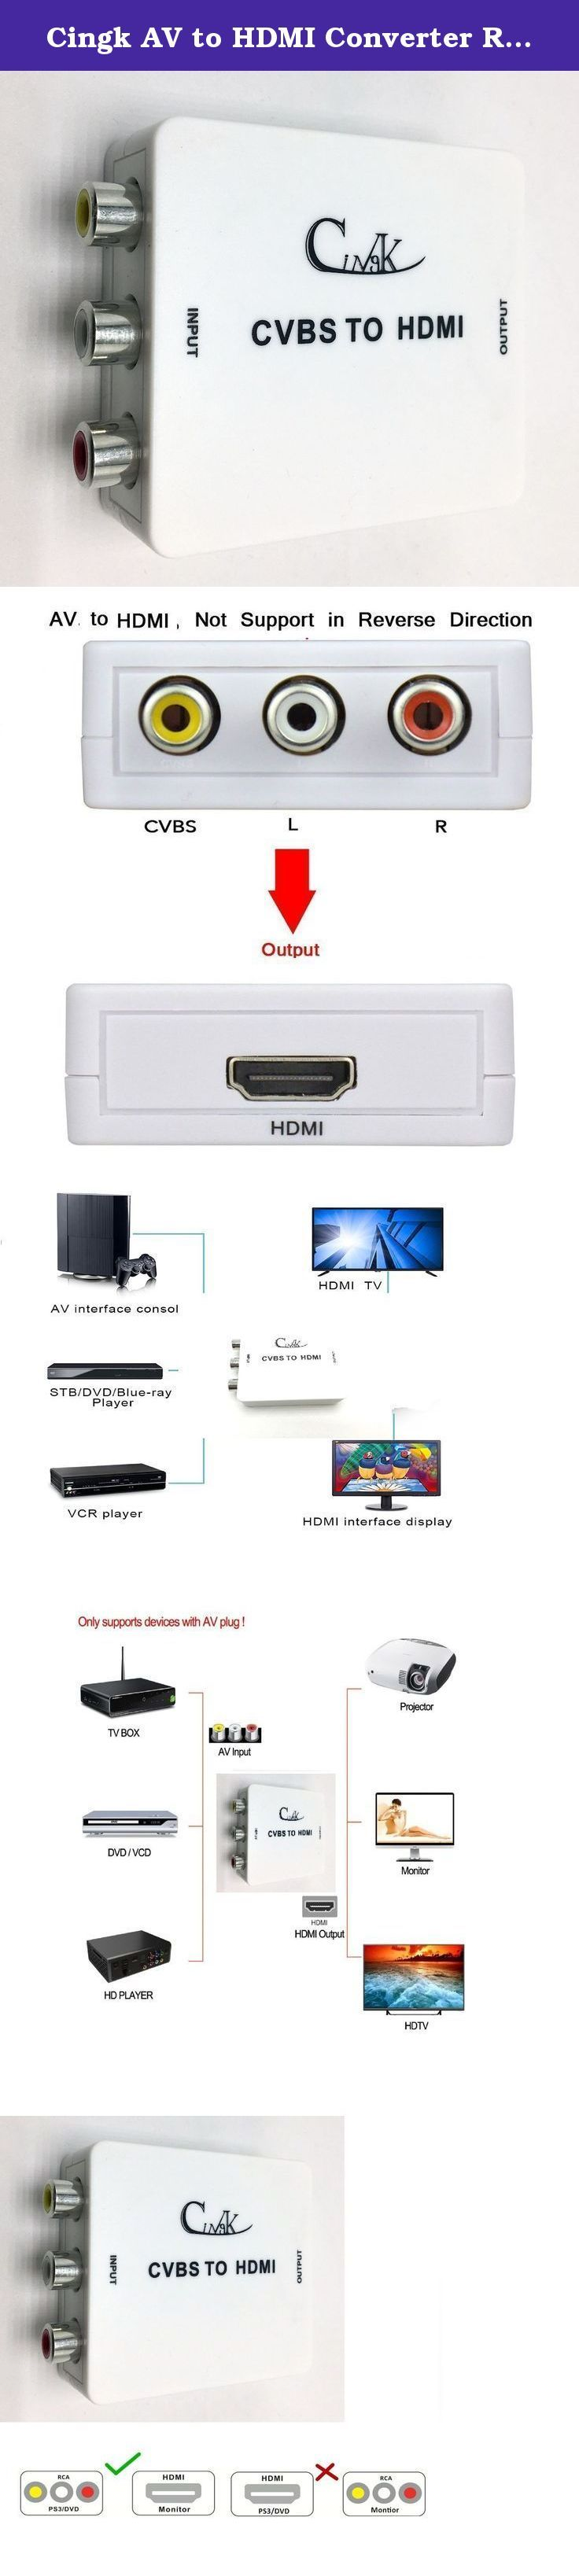 Cingk AV to HDMI Converter RCA Composite CVBS AV to HDMI Video Audio Converter Adapter, Support 1080P with USB Charge Cable for TV/PC/PS3/Blue-Ray DVD(AV2HDMI Converter), White. Introduction: Achieve 1080P HD video experience from a large screen ! RCA Composite CVBS / AV to HDMI converter (PLUG AND PLAY) is a video signal to HDMI output converter with either 720p or 1080p TVs, and the output mode is easily selectable with a switch on the device. This converter's advanced processing…